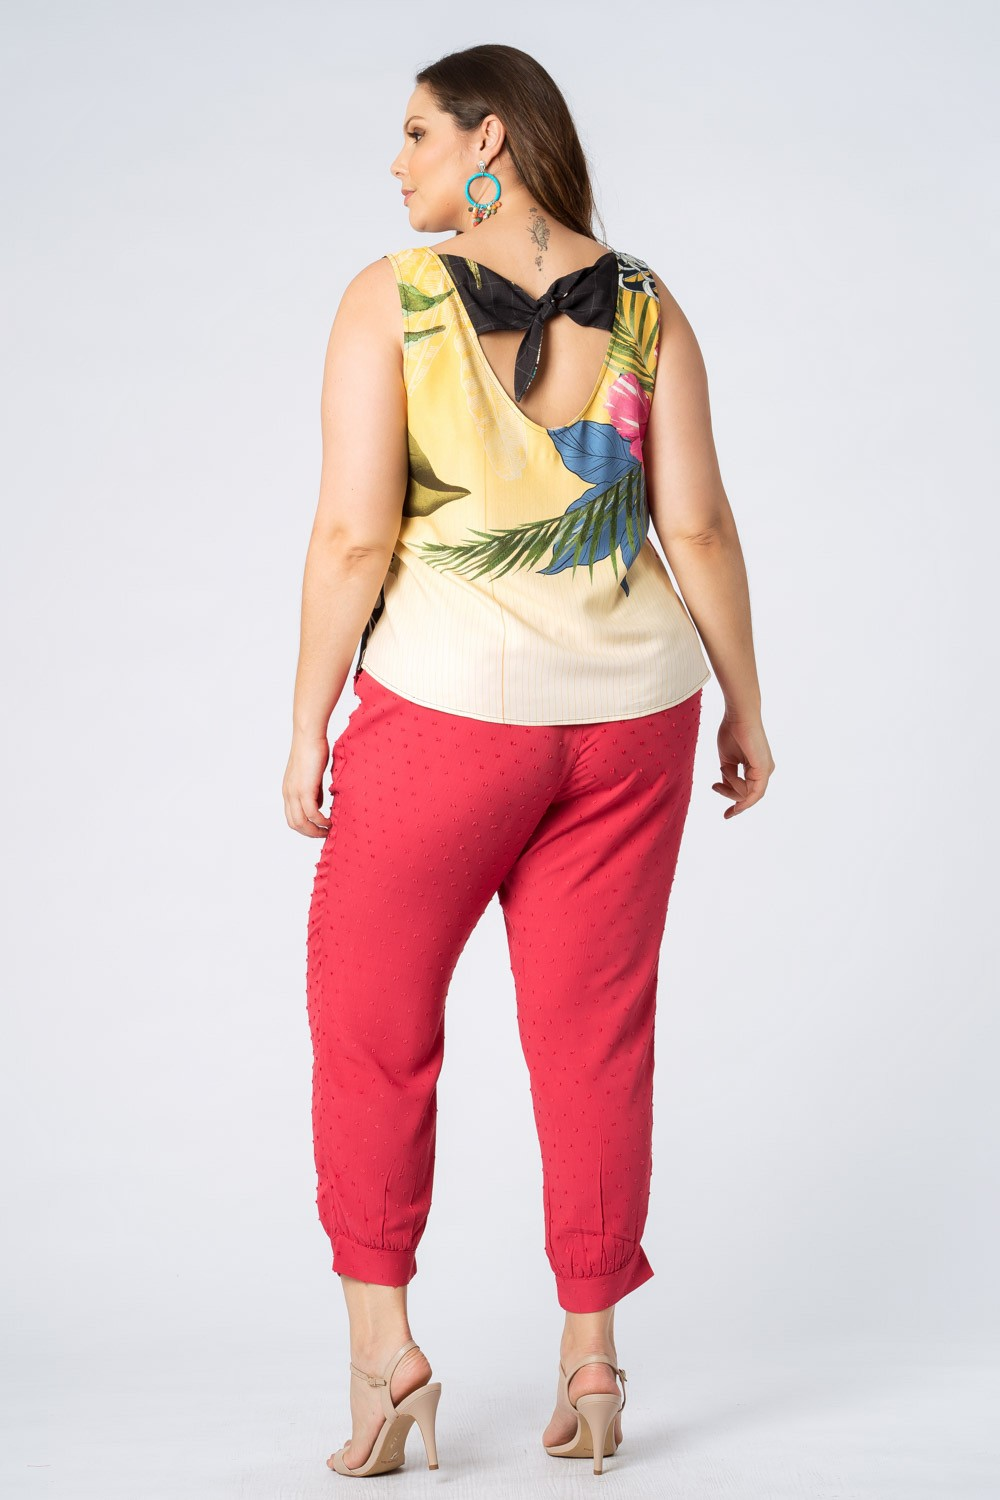 RE-VIVA | REGATA PLUS SIZE ESTAMPADA AMARELO E AZUL